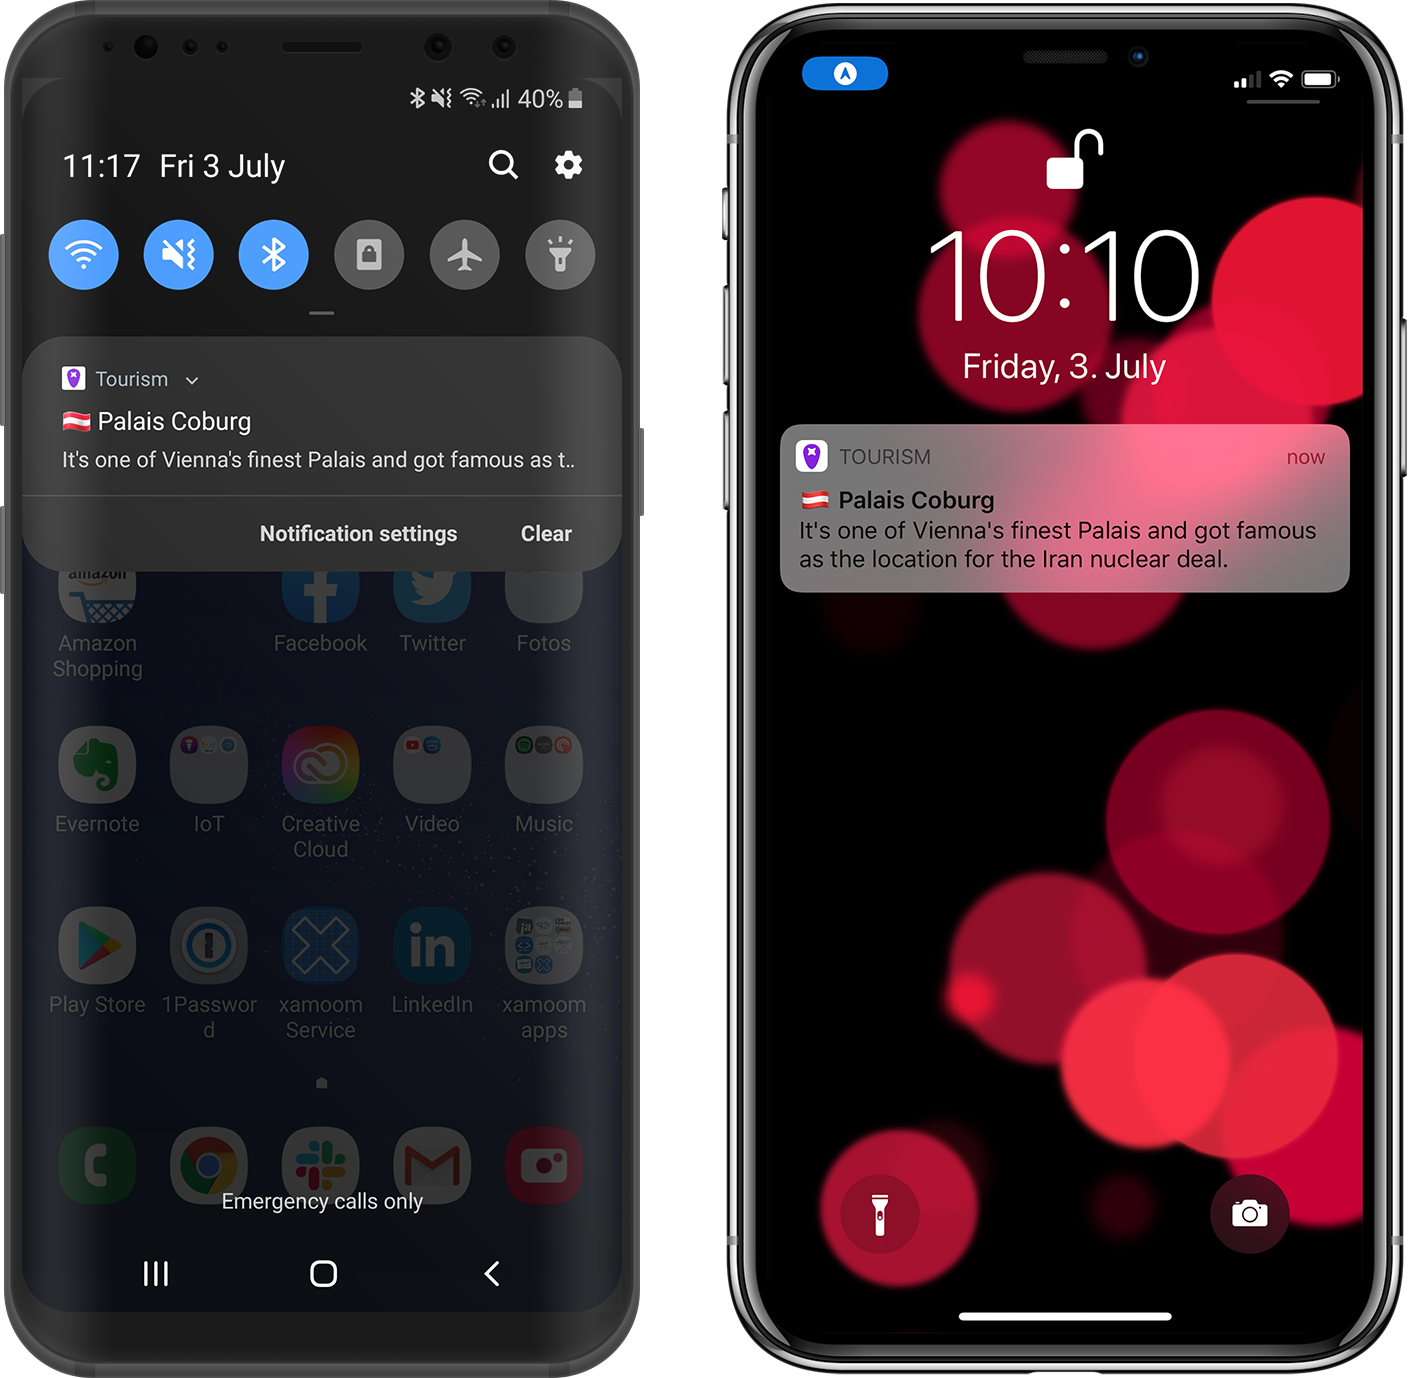 xamoom notifications work on both iOS and Android ...